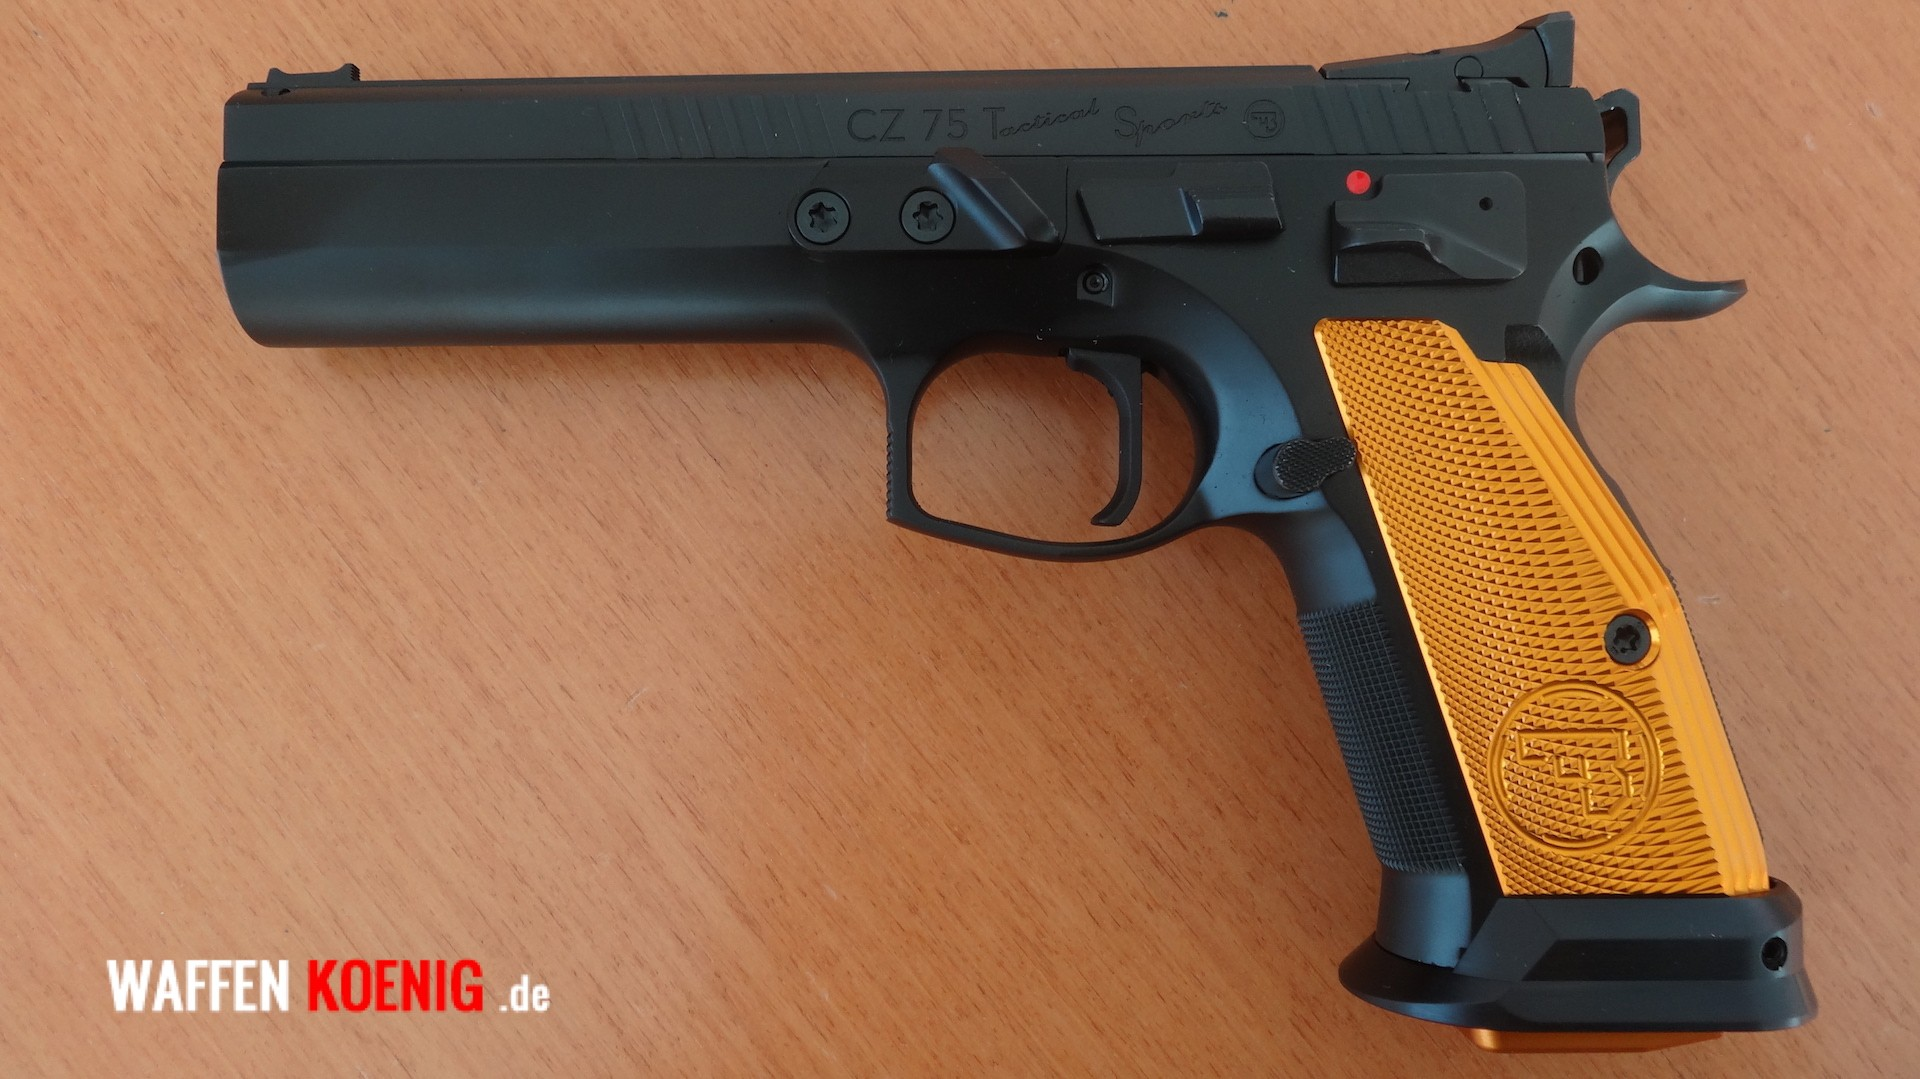 Pistole CZ 75 Tactical Sports orange, Cal. 9x19 mm